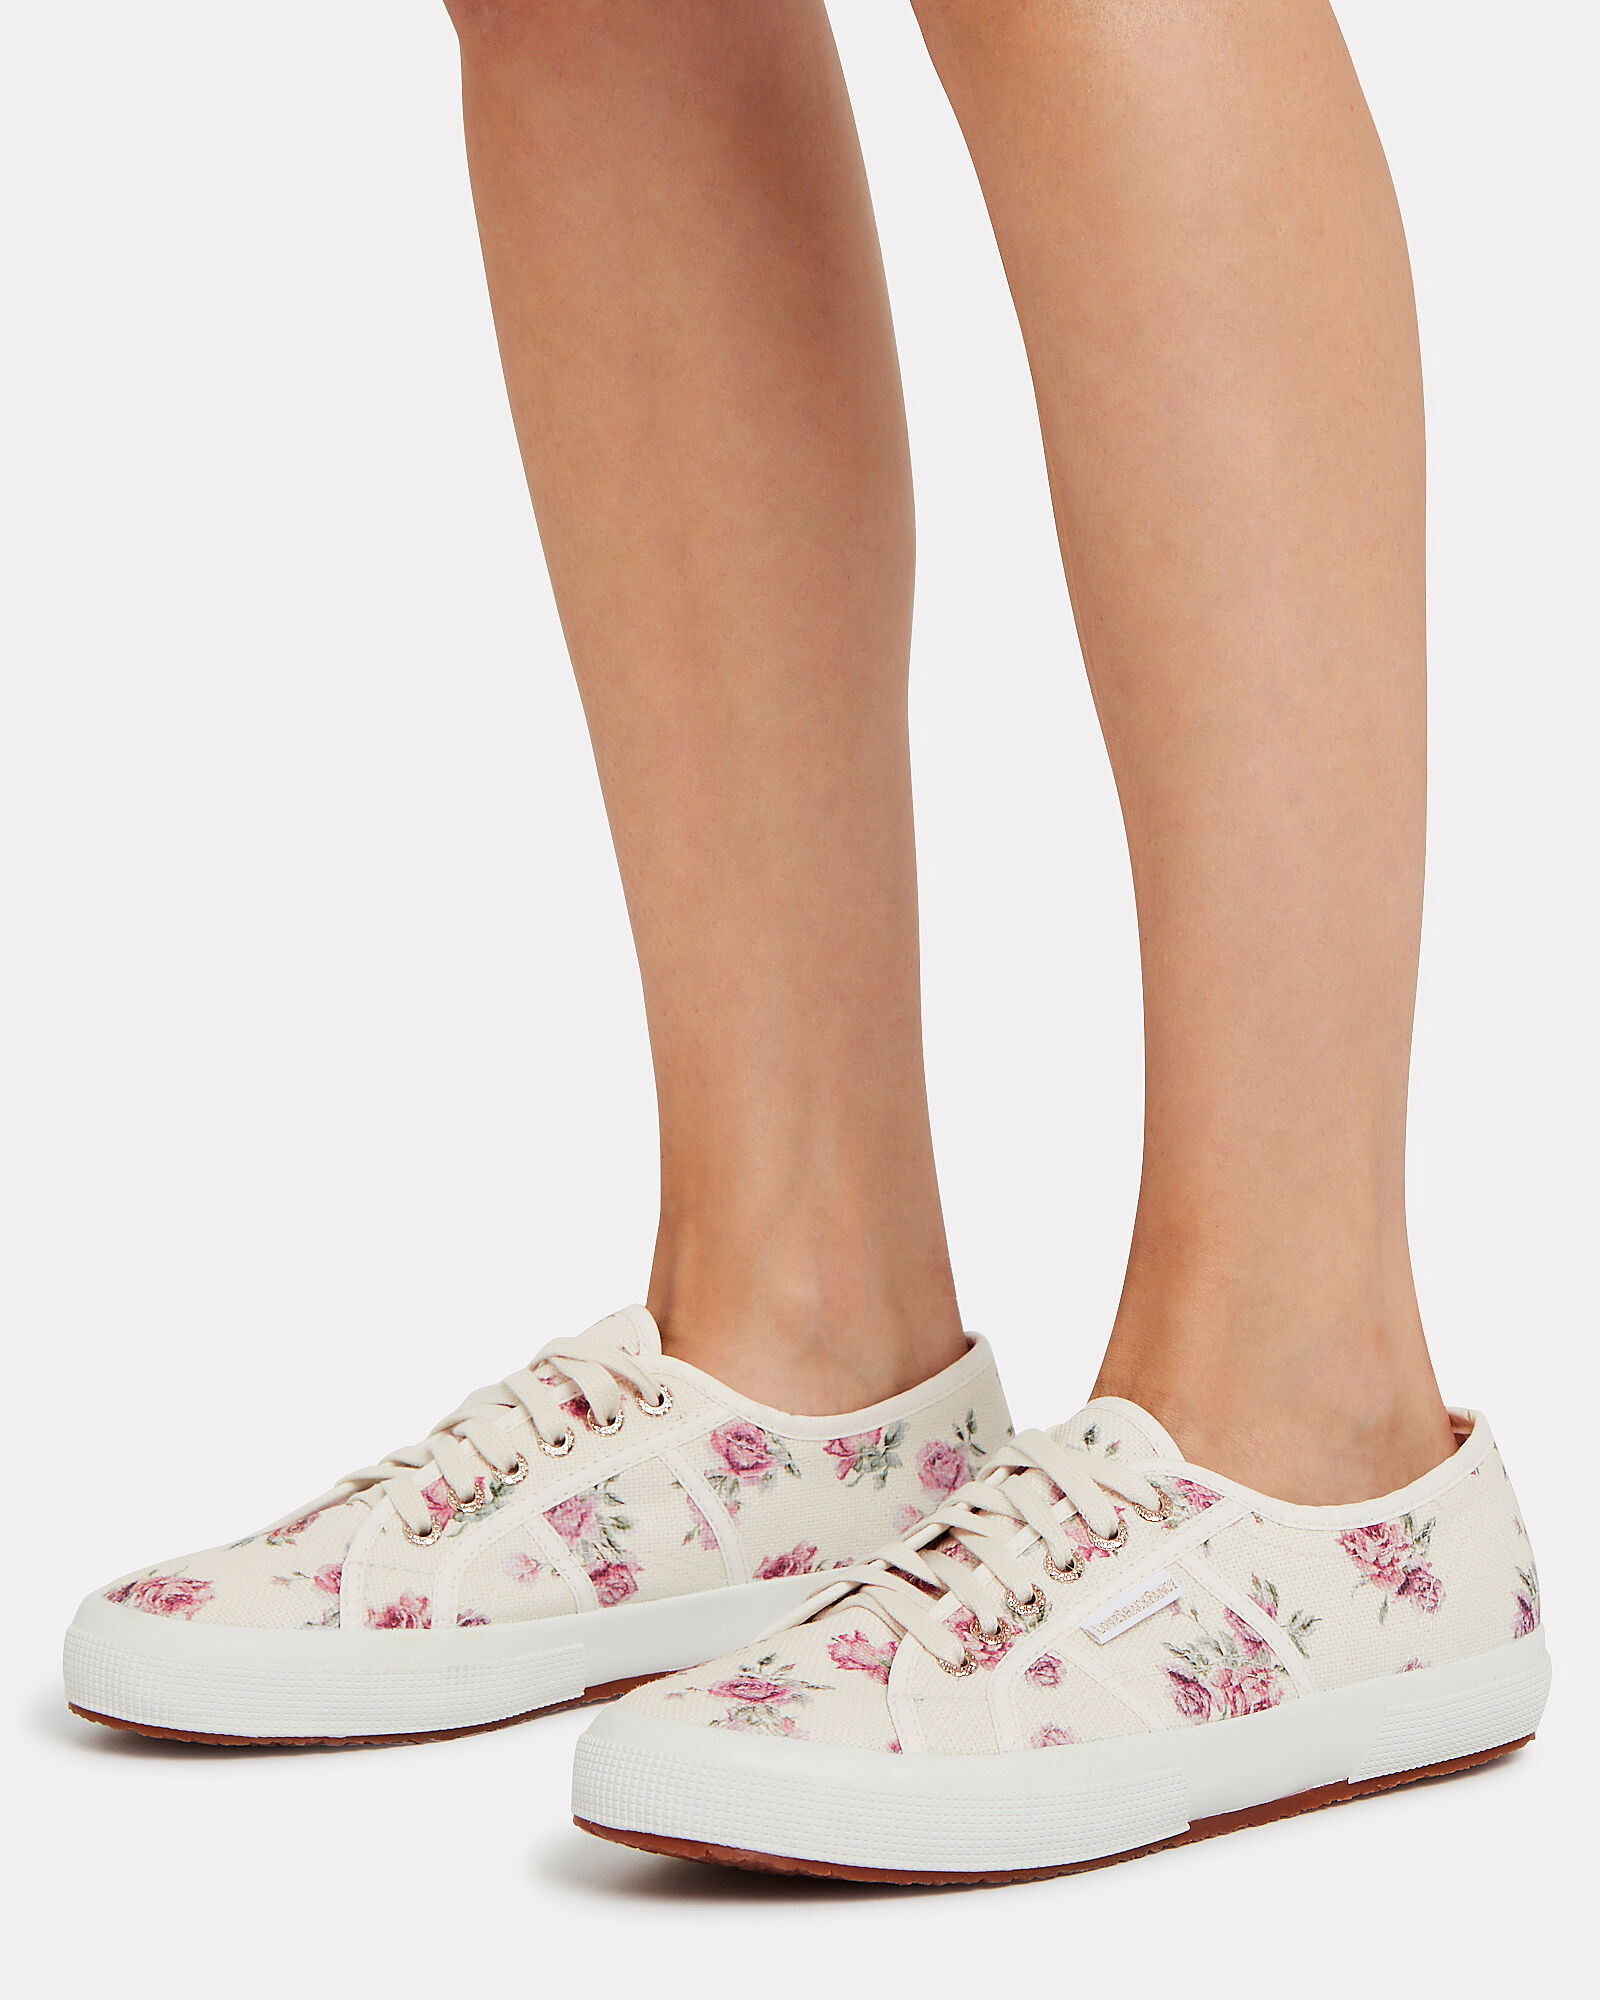 LOVESHACKFANCY X Superga Provence Floral Sneakers, WHITE/FLORAL, hi-res